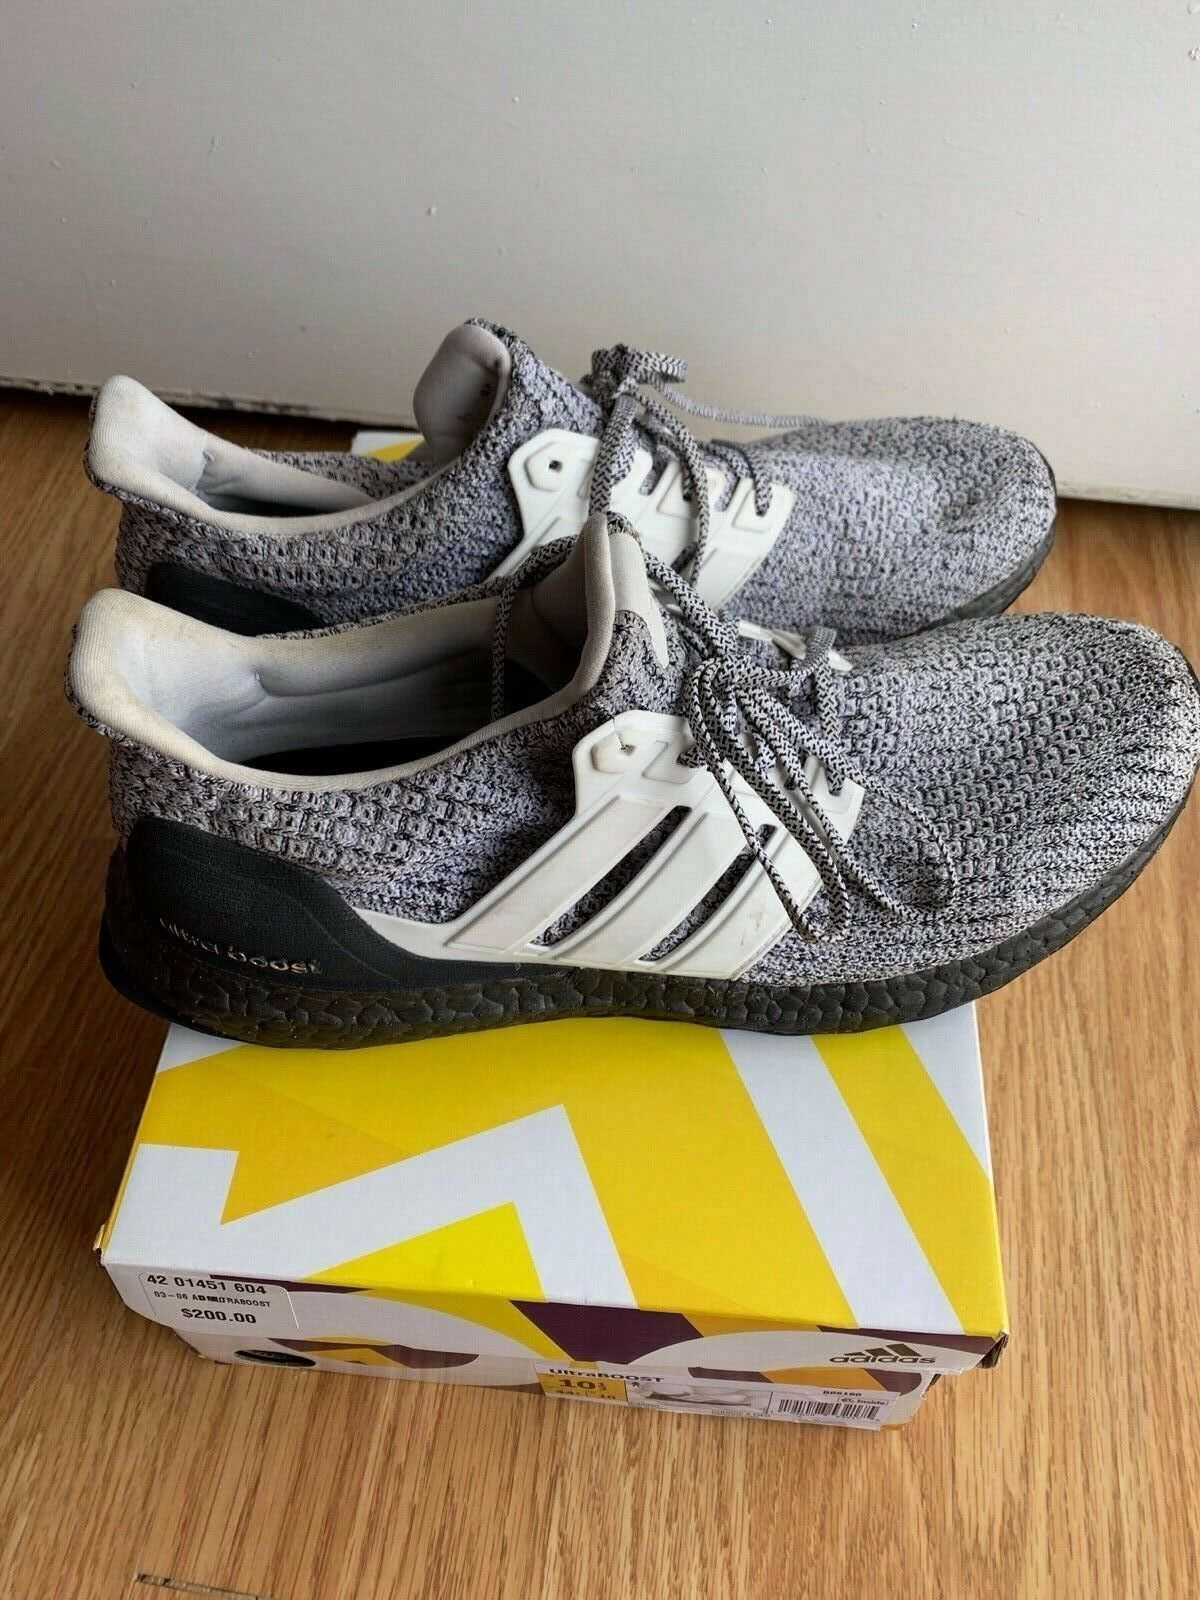 eb4985dbd Adidas Ultra BOOST 4.0 Oreo BB6180 Cookies and Cream LTD Men s Size 10.5 US